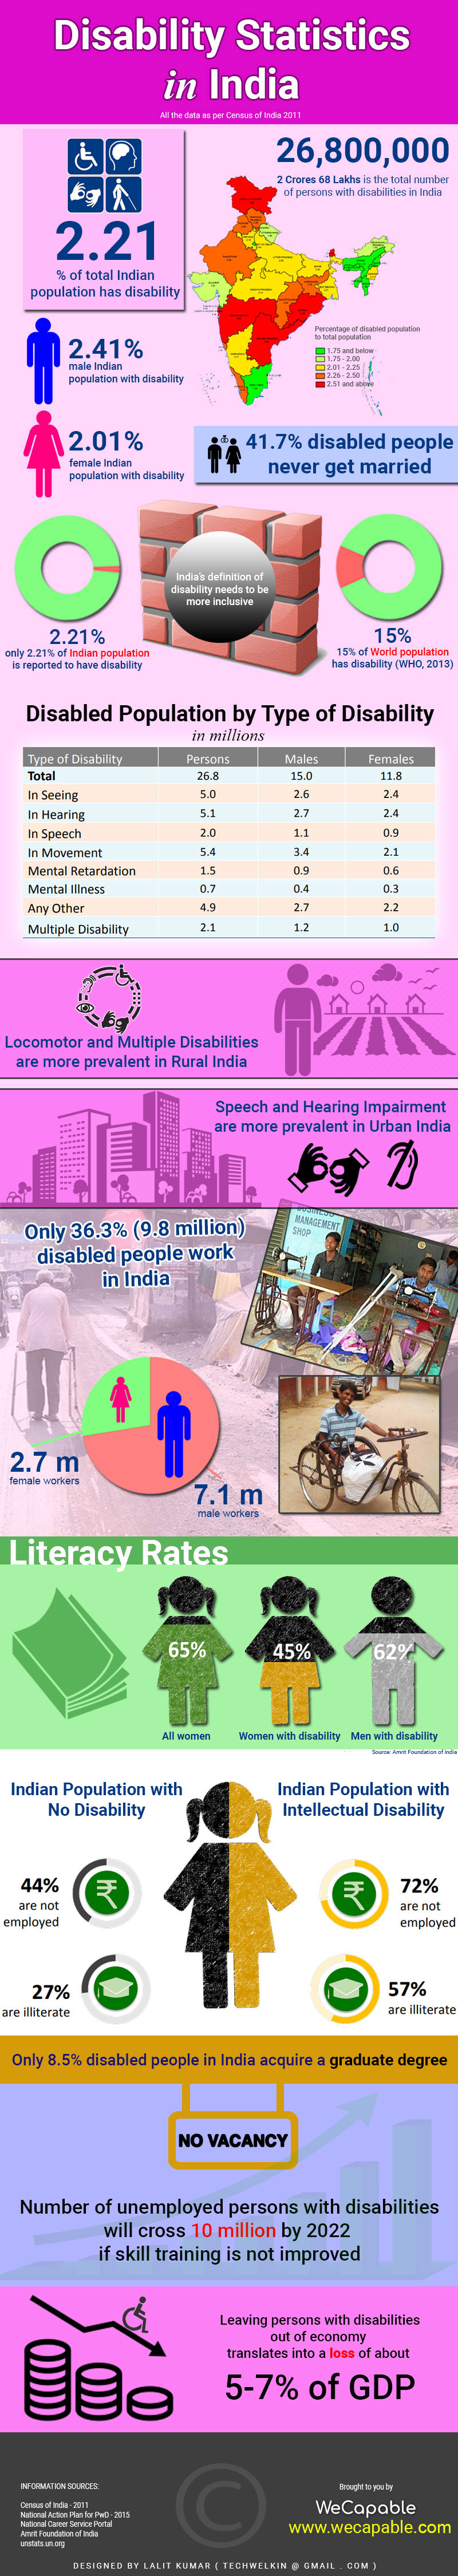 Disability in India: Data, Statistics and Facts